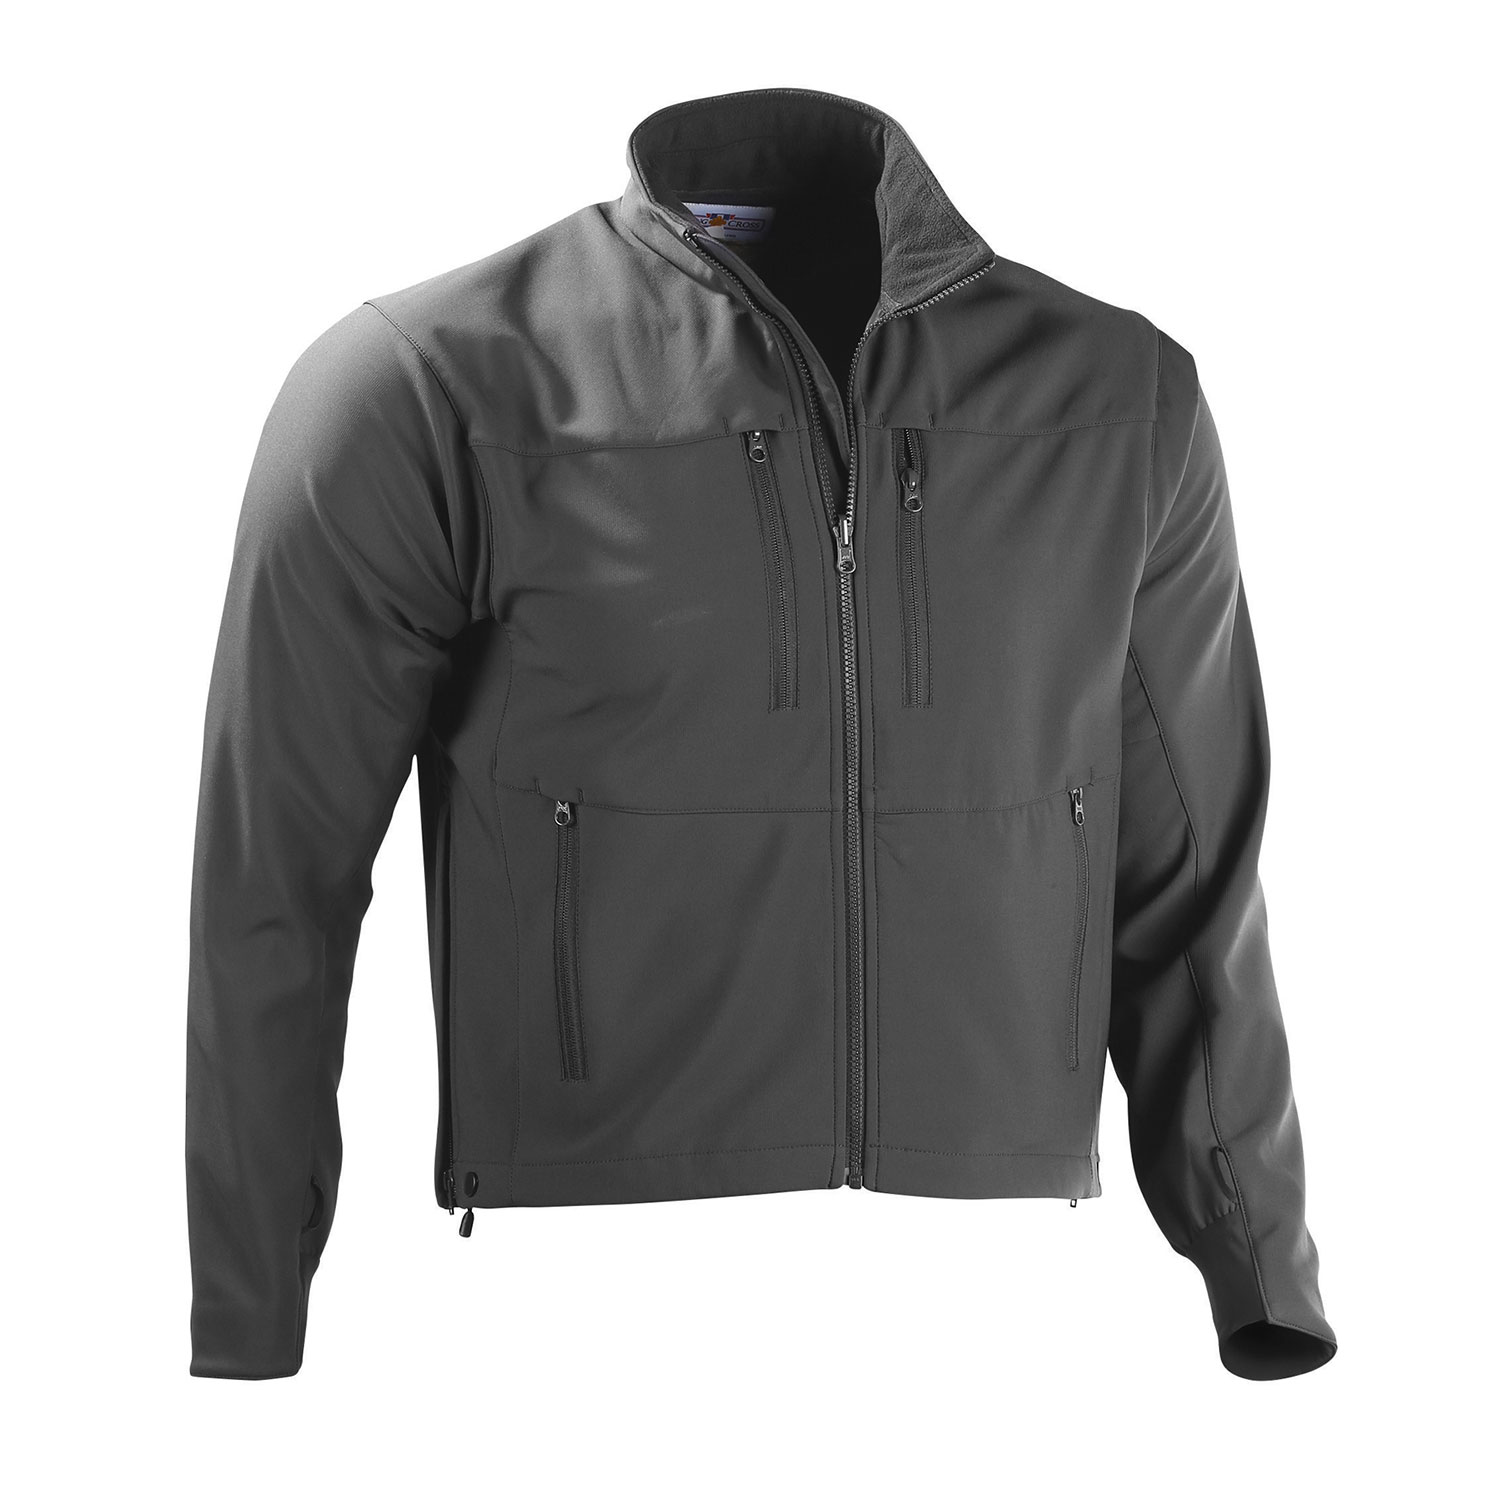 Flying Cross Soft-Shell Jacket